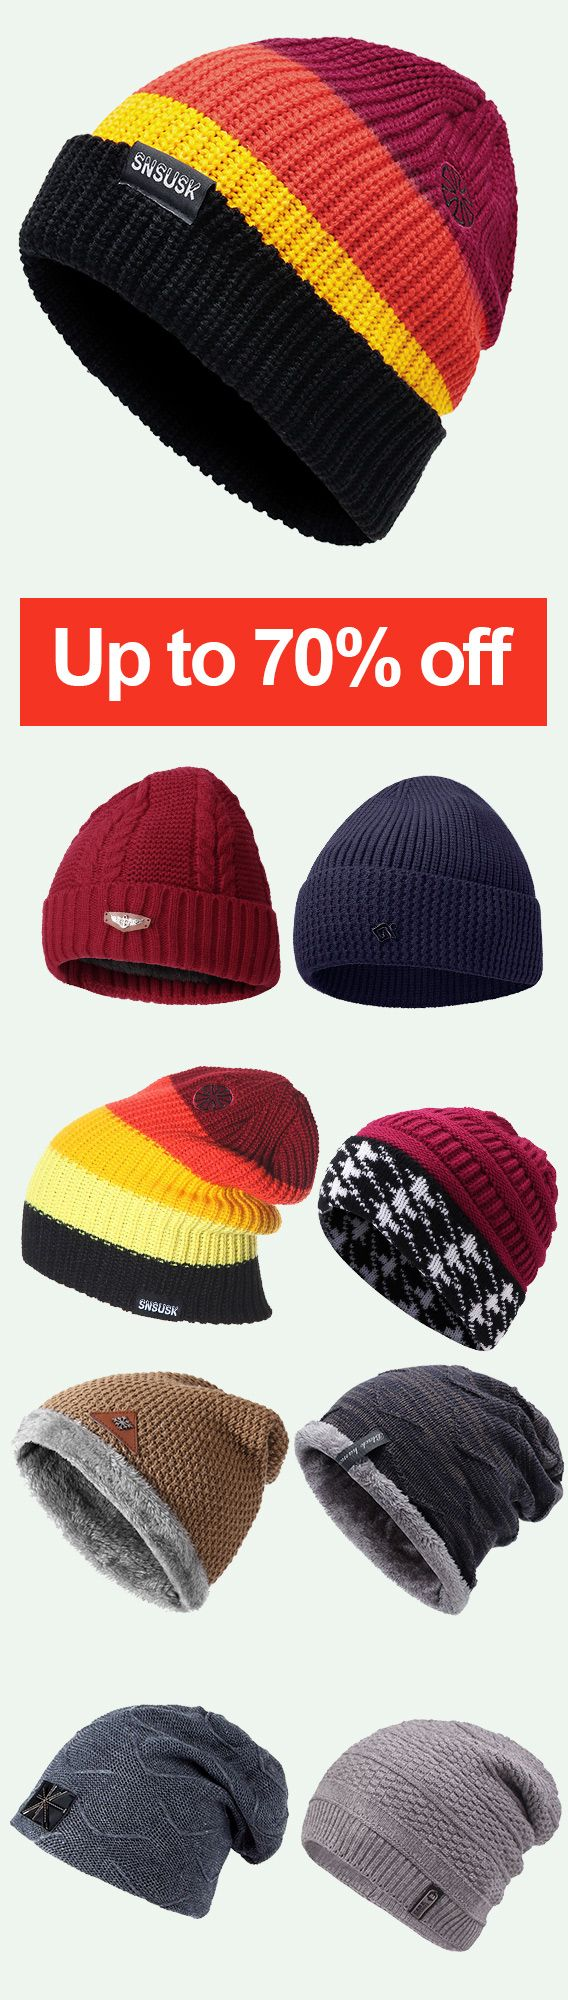 64% off&Free shipping. Men Women Winter Double Knit Striped Multicolor Knitted H… – Men's Accessories